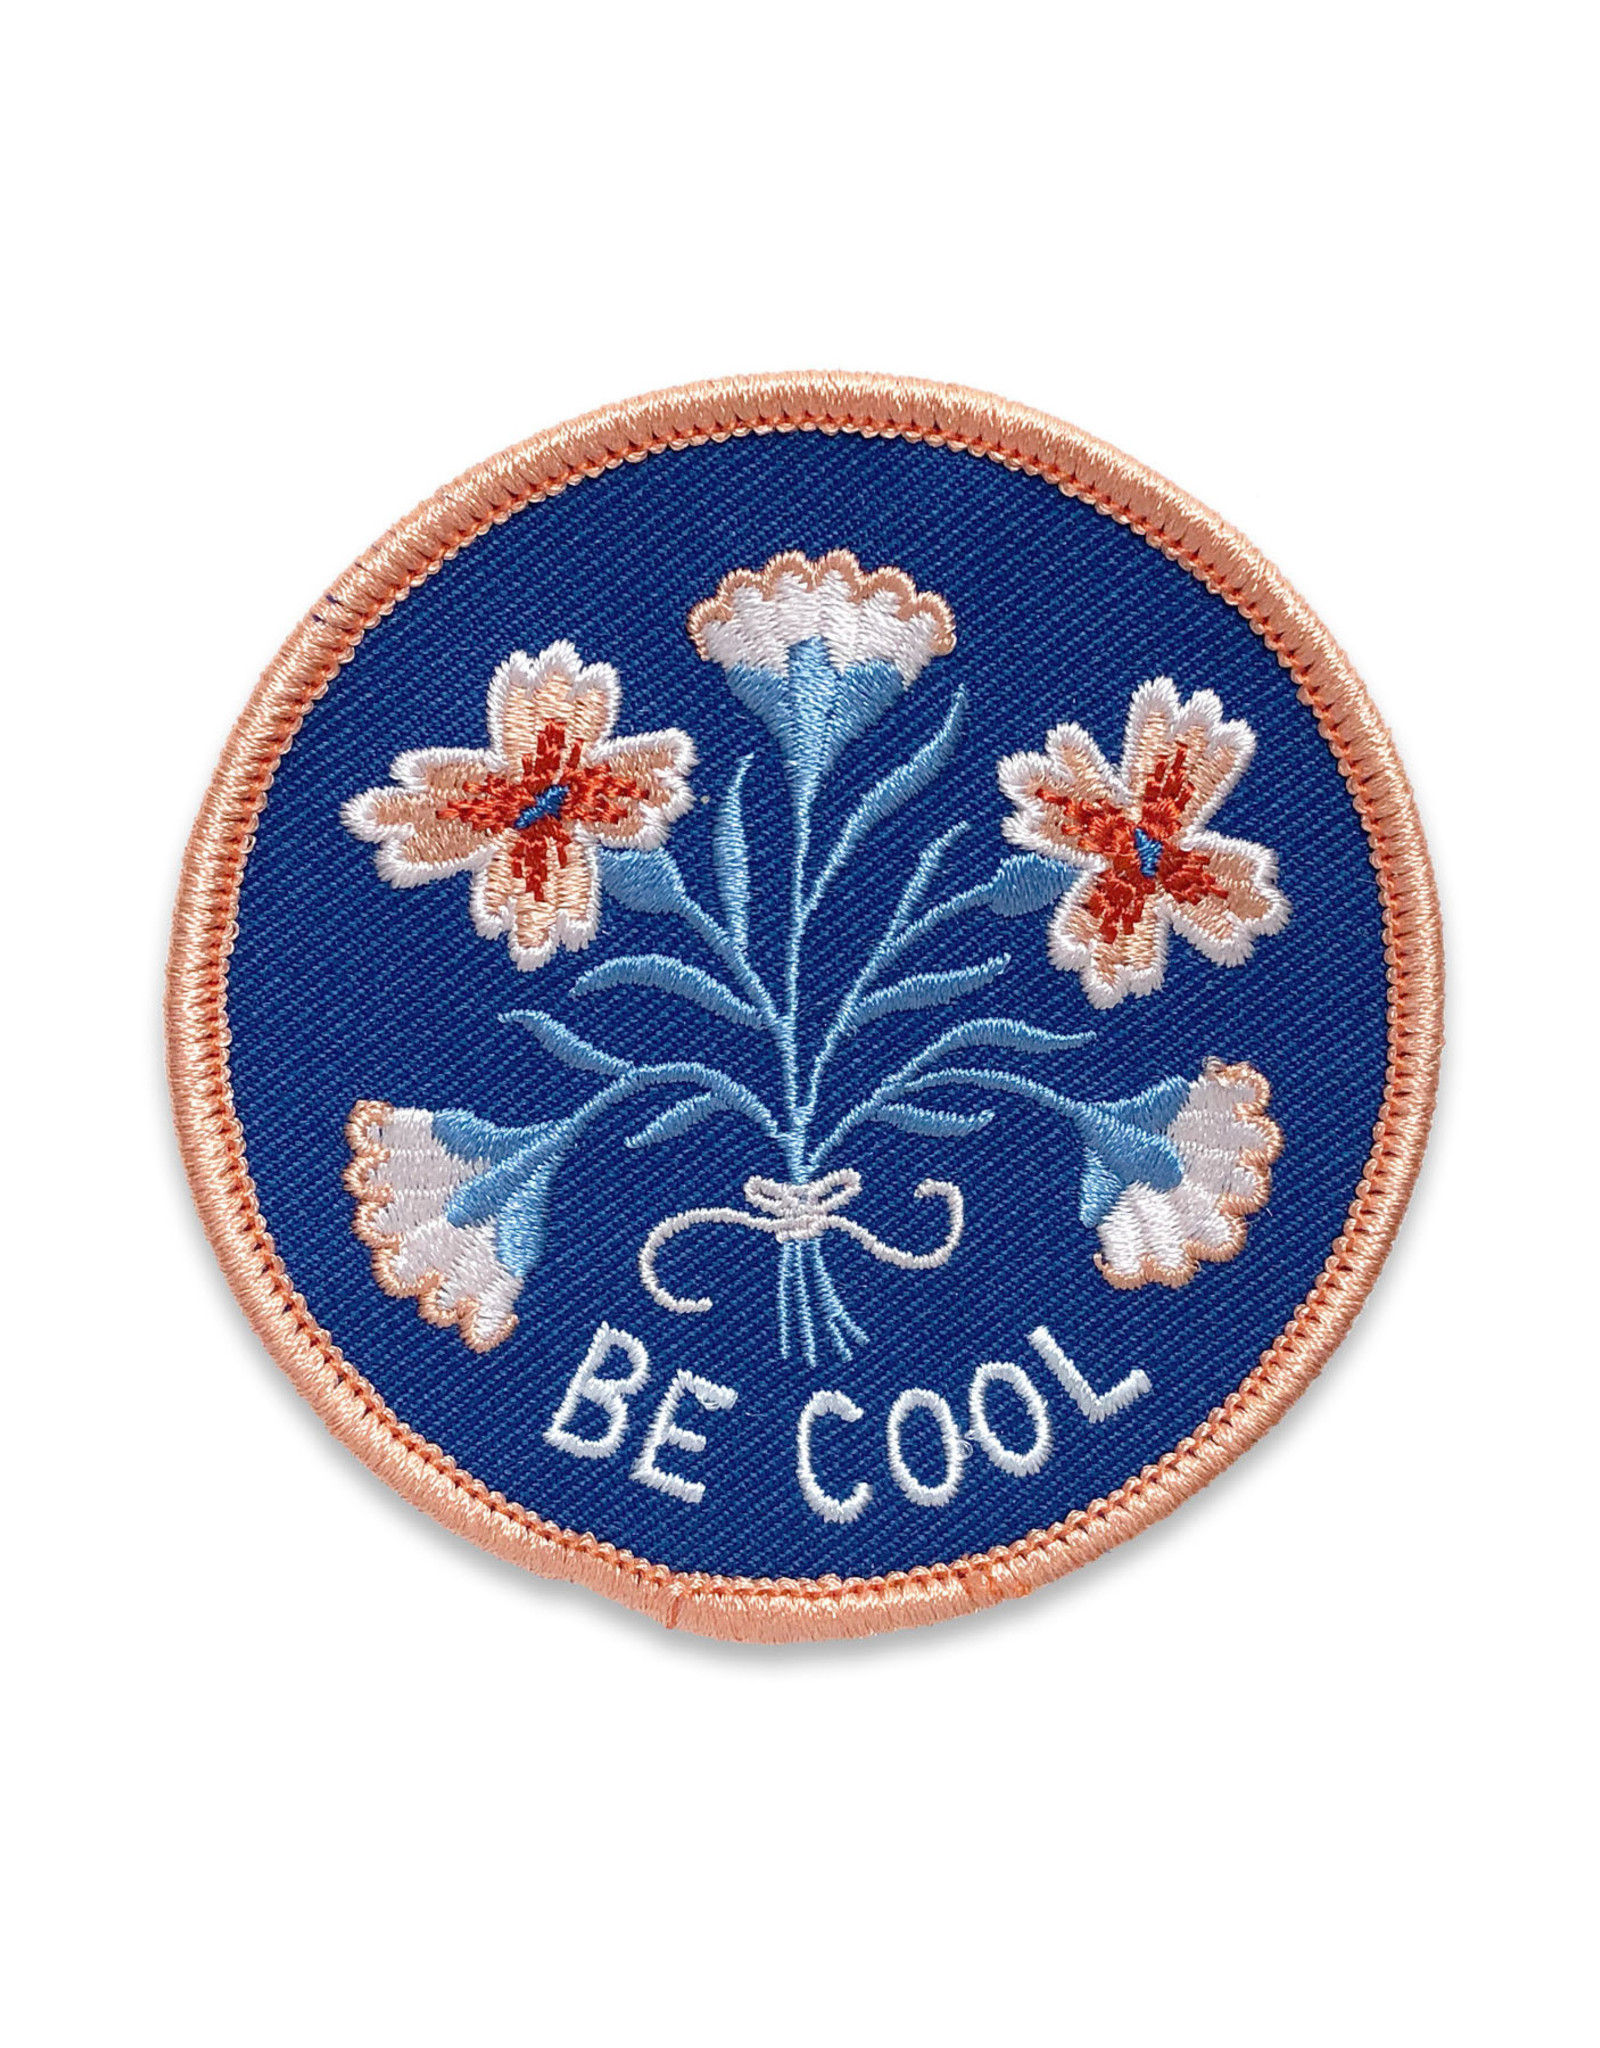 Floral Feelings - Be Cool Patch